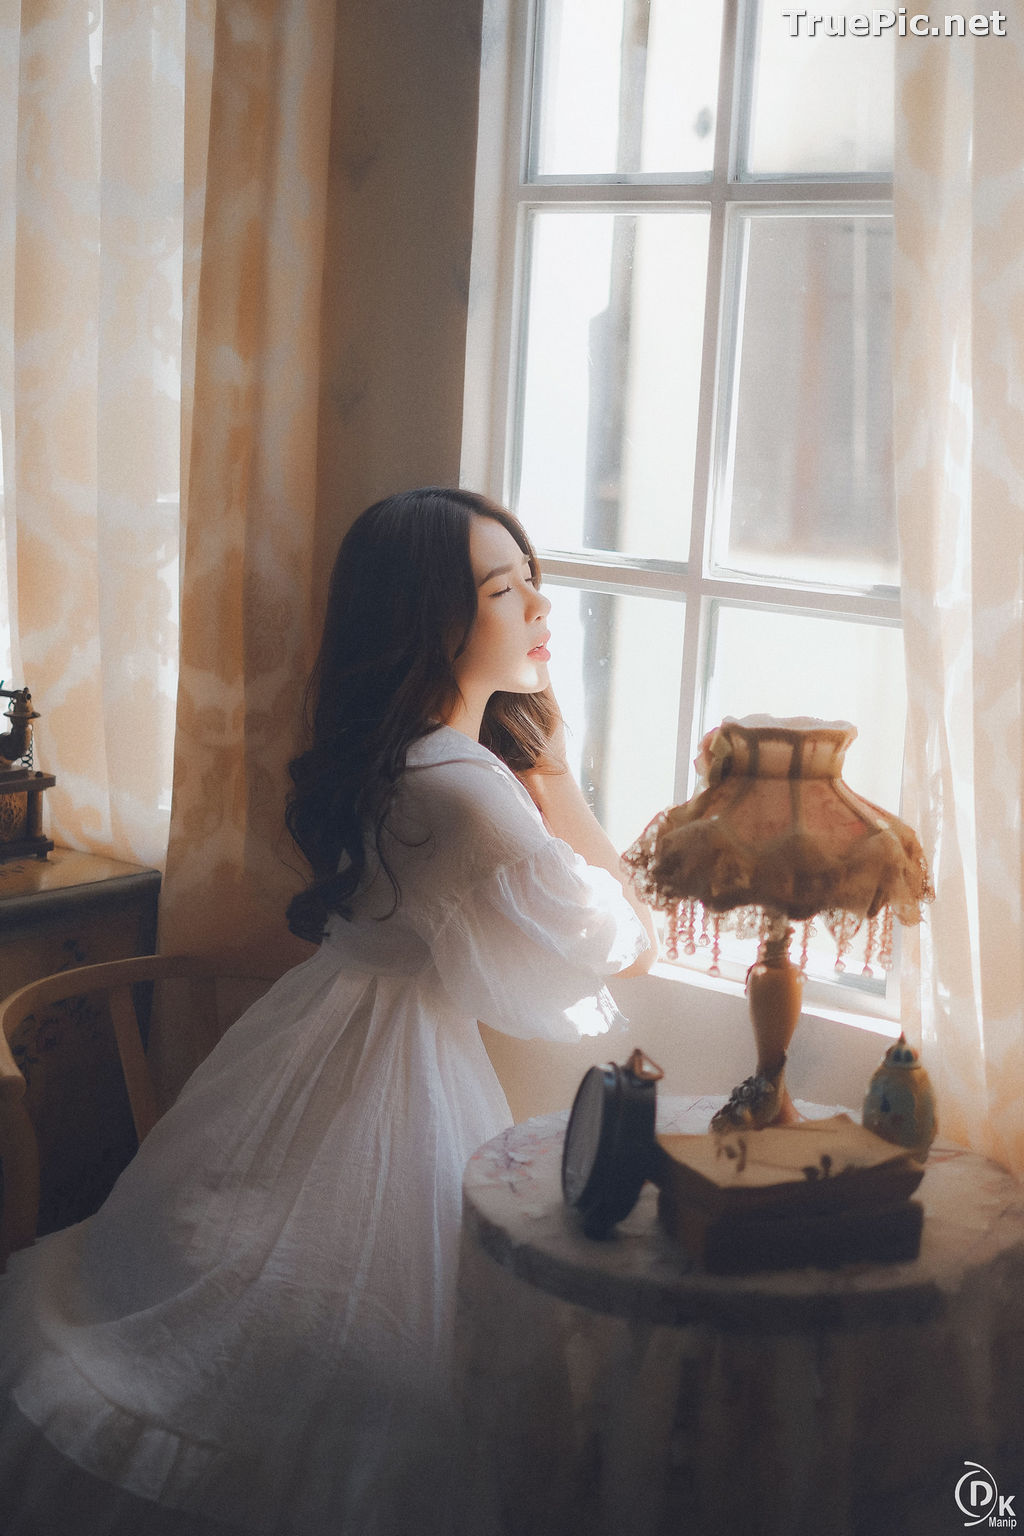 Image Vietnamese Beautiful Girl - The Lonely White Princess - TruePic.net - Picture-1